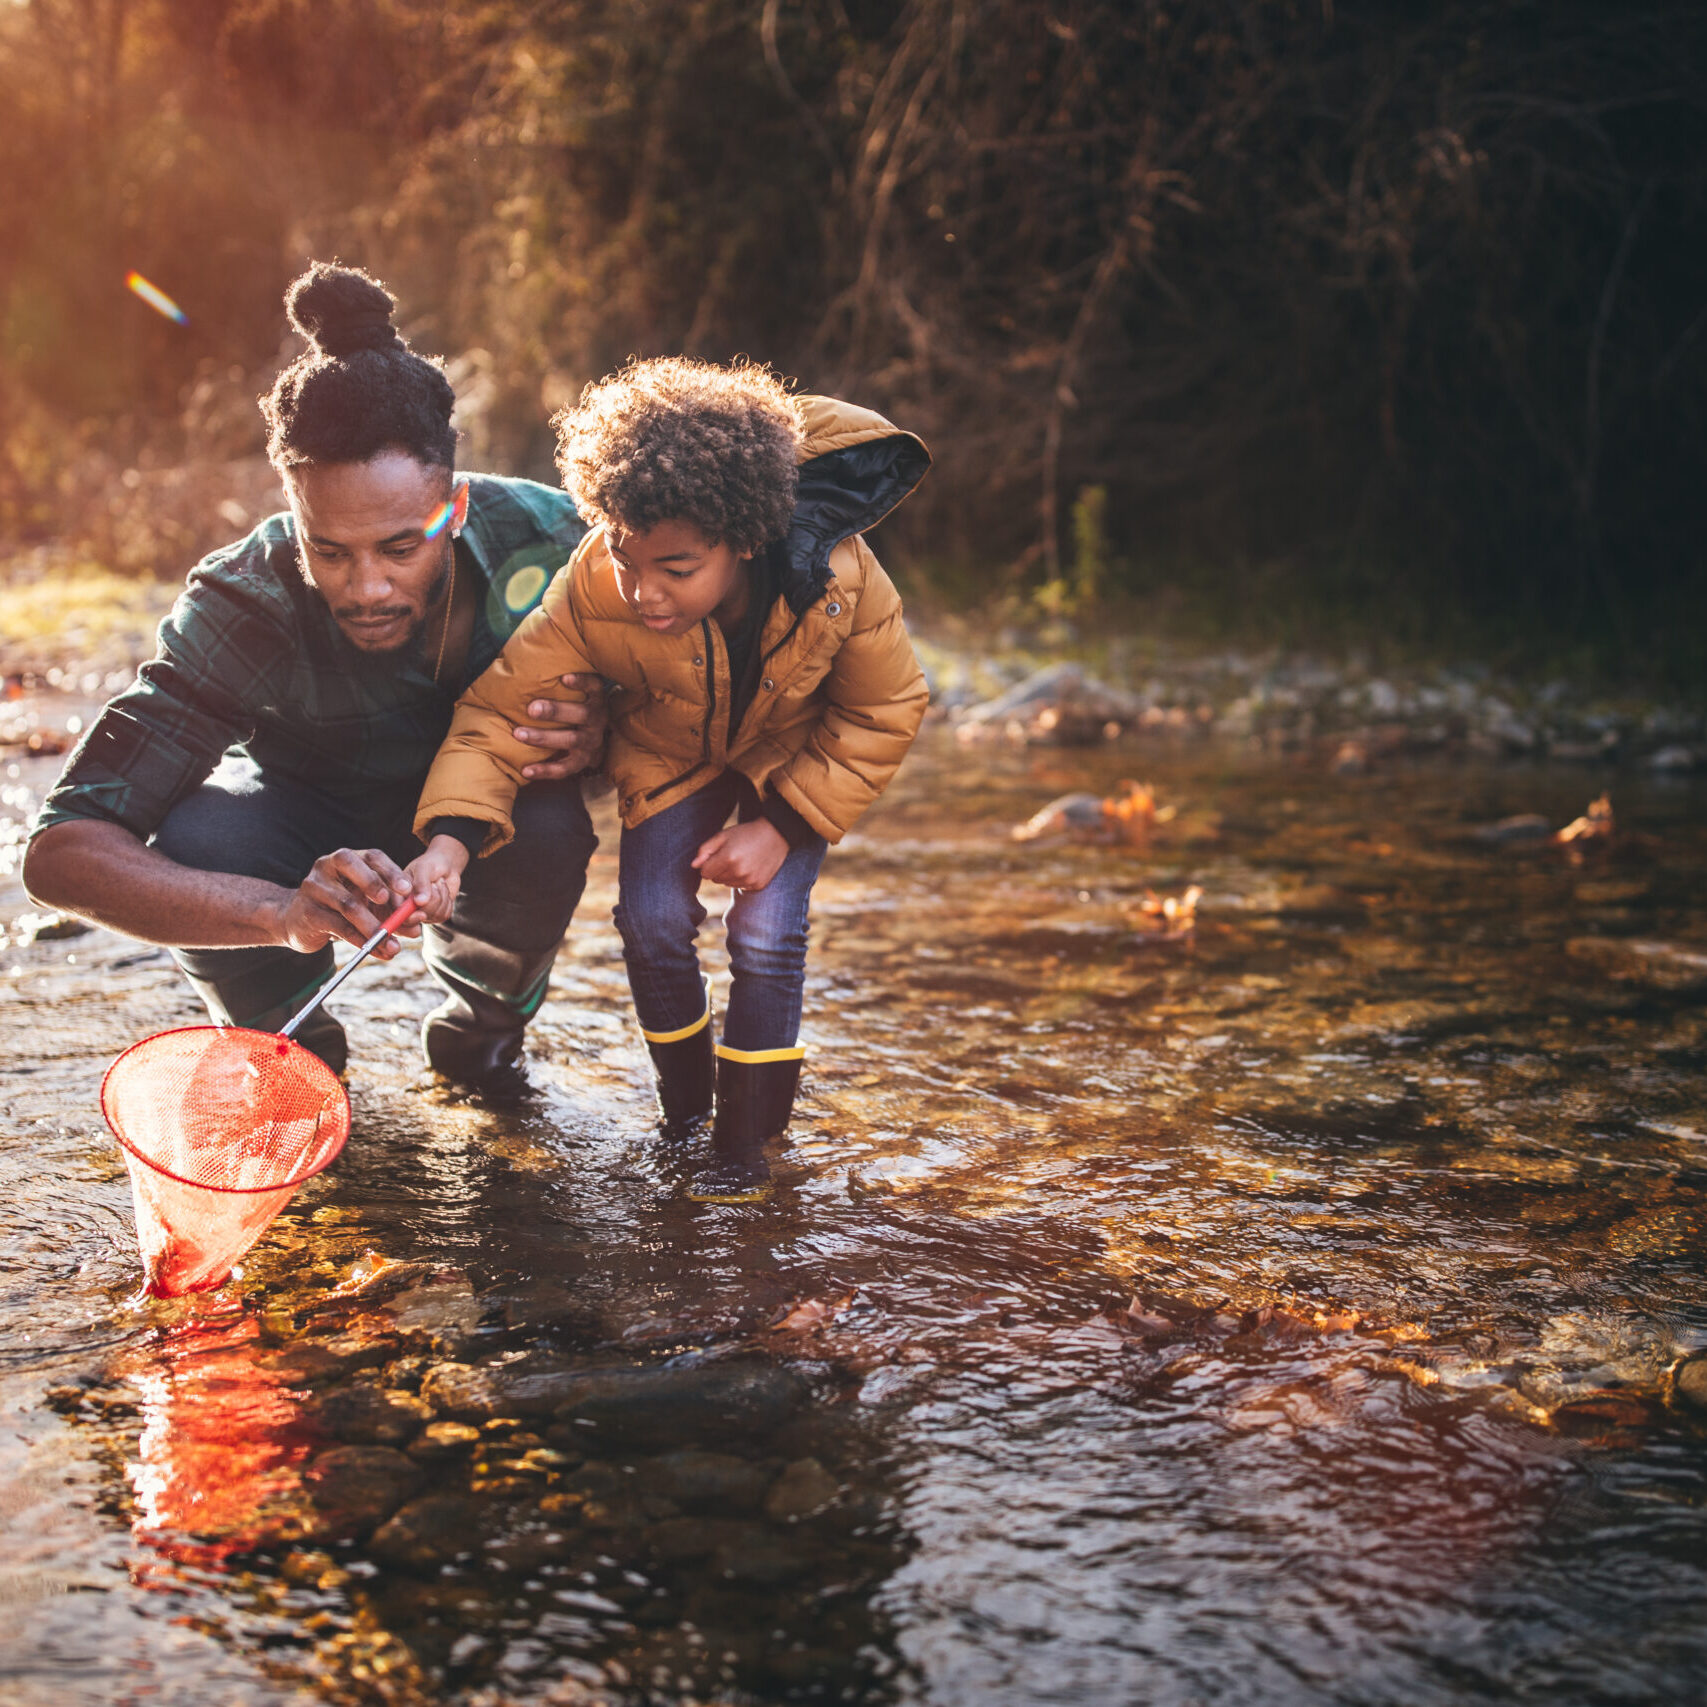 Young dad teaching son how to fish with fishing net in mountain stream at sunset